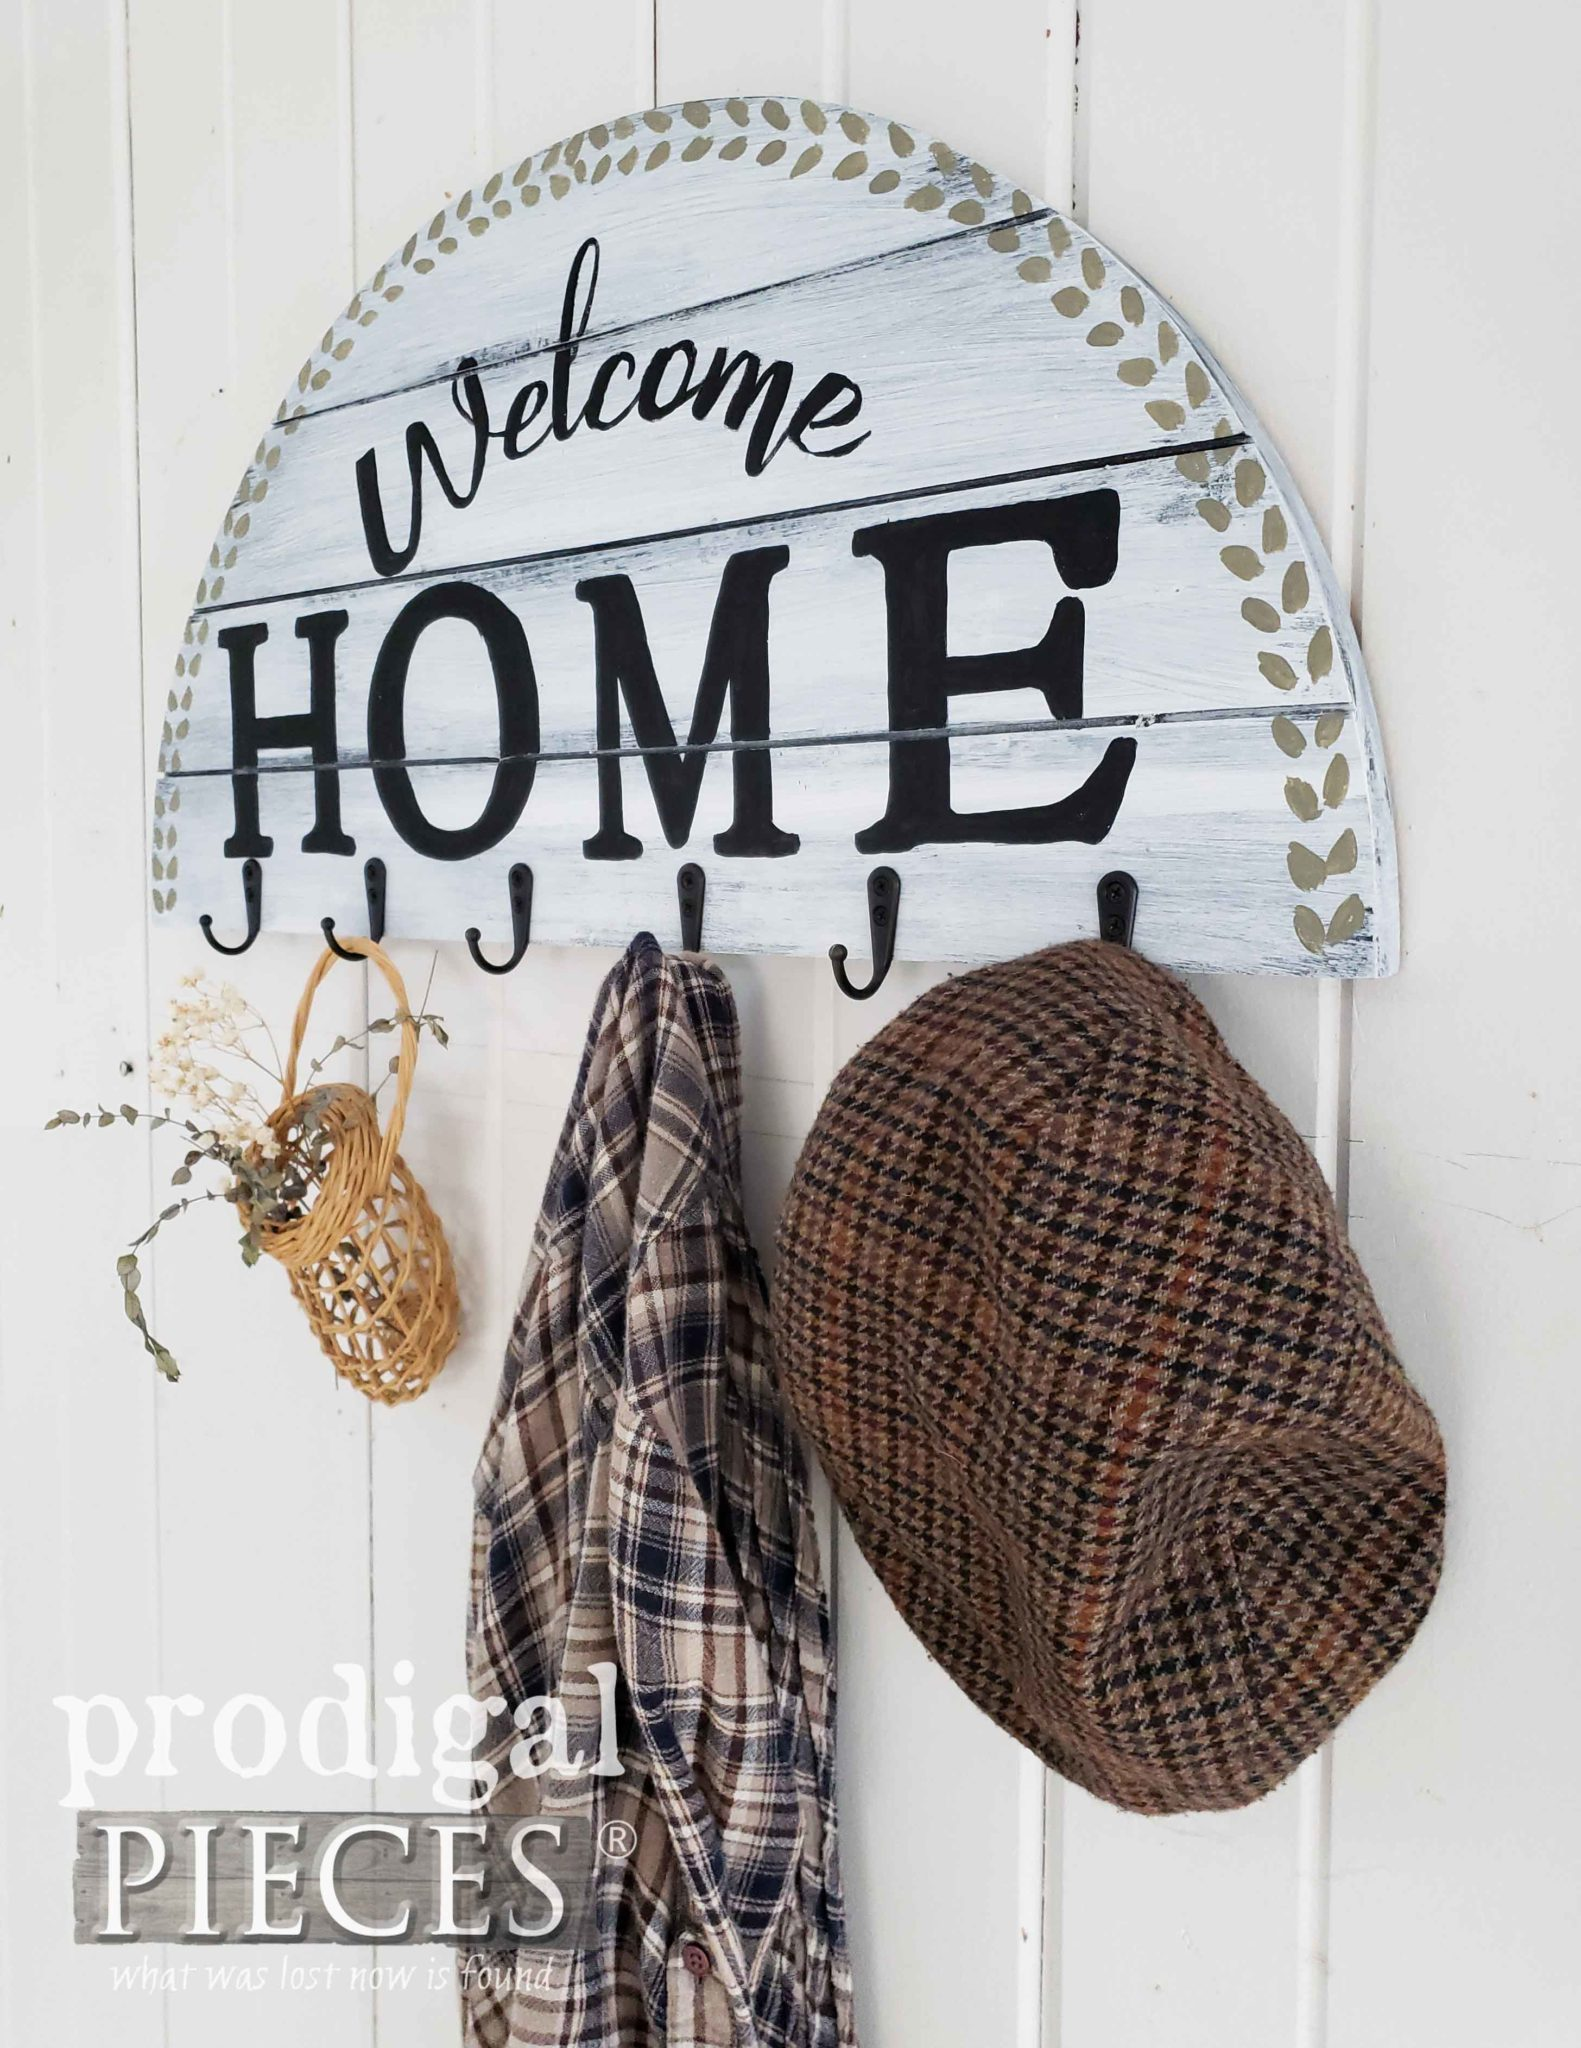 Handmade Farmhouse Coat Rack with Tutorial by Larissa of Prodigal Pieces | prodigalpieces.com #prodigalpieces